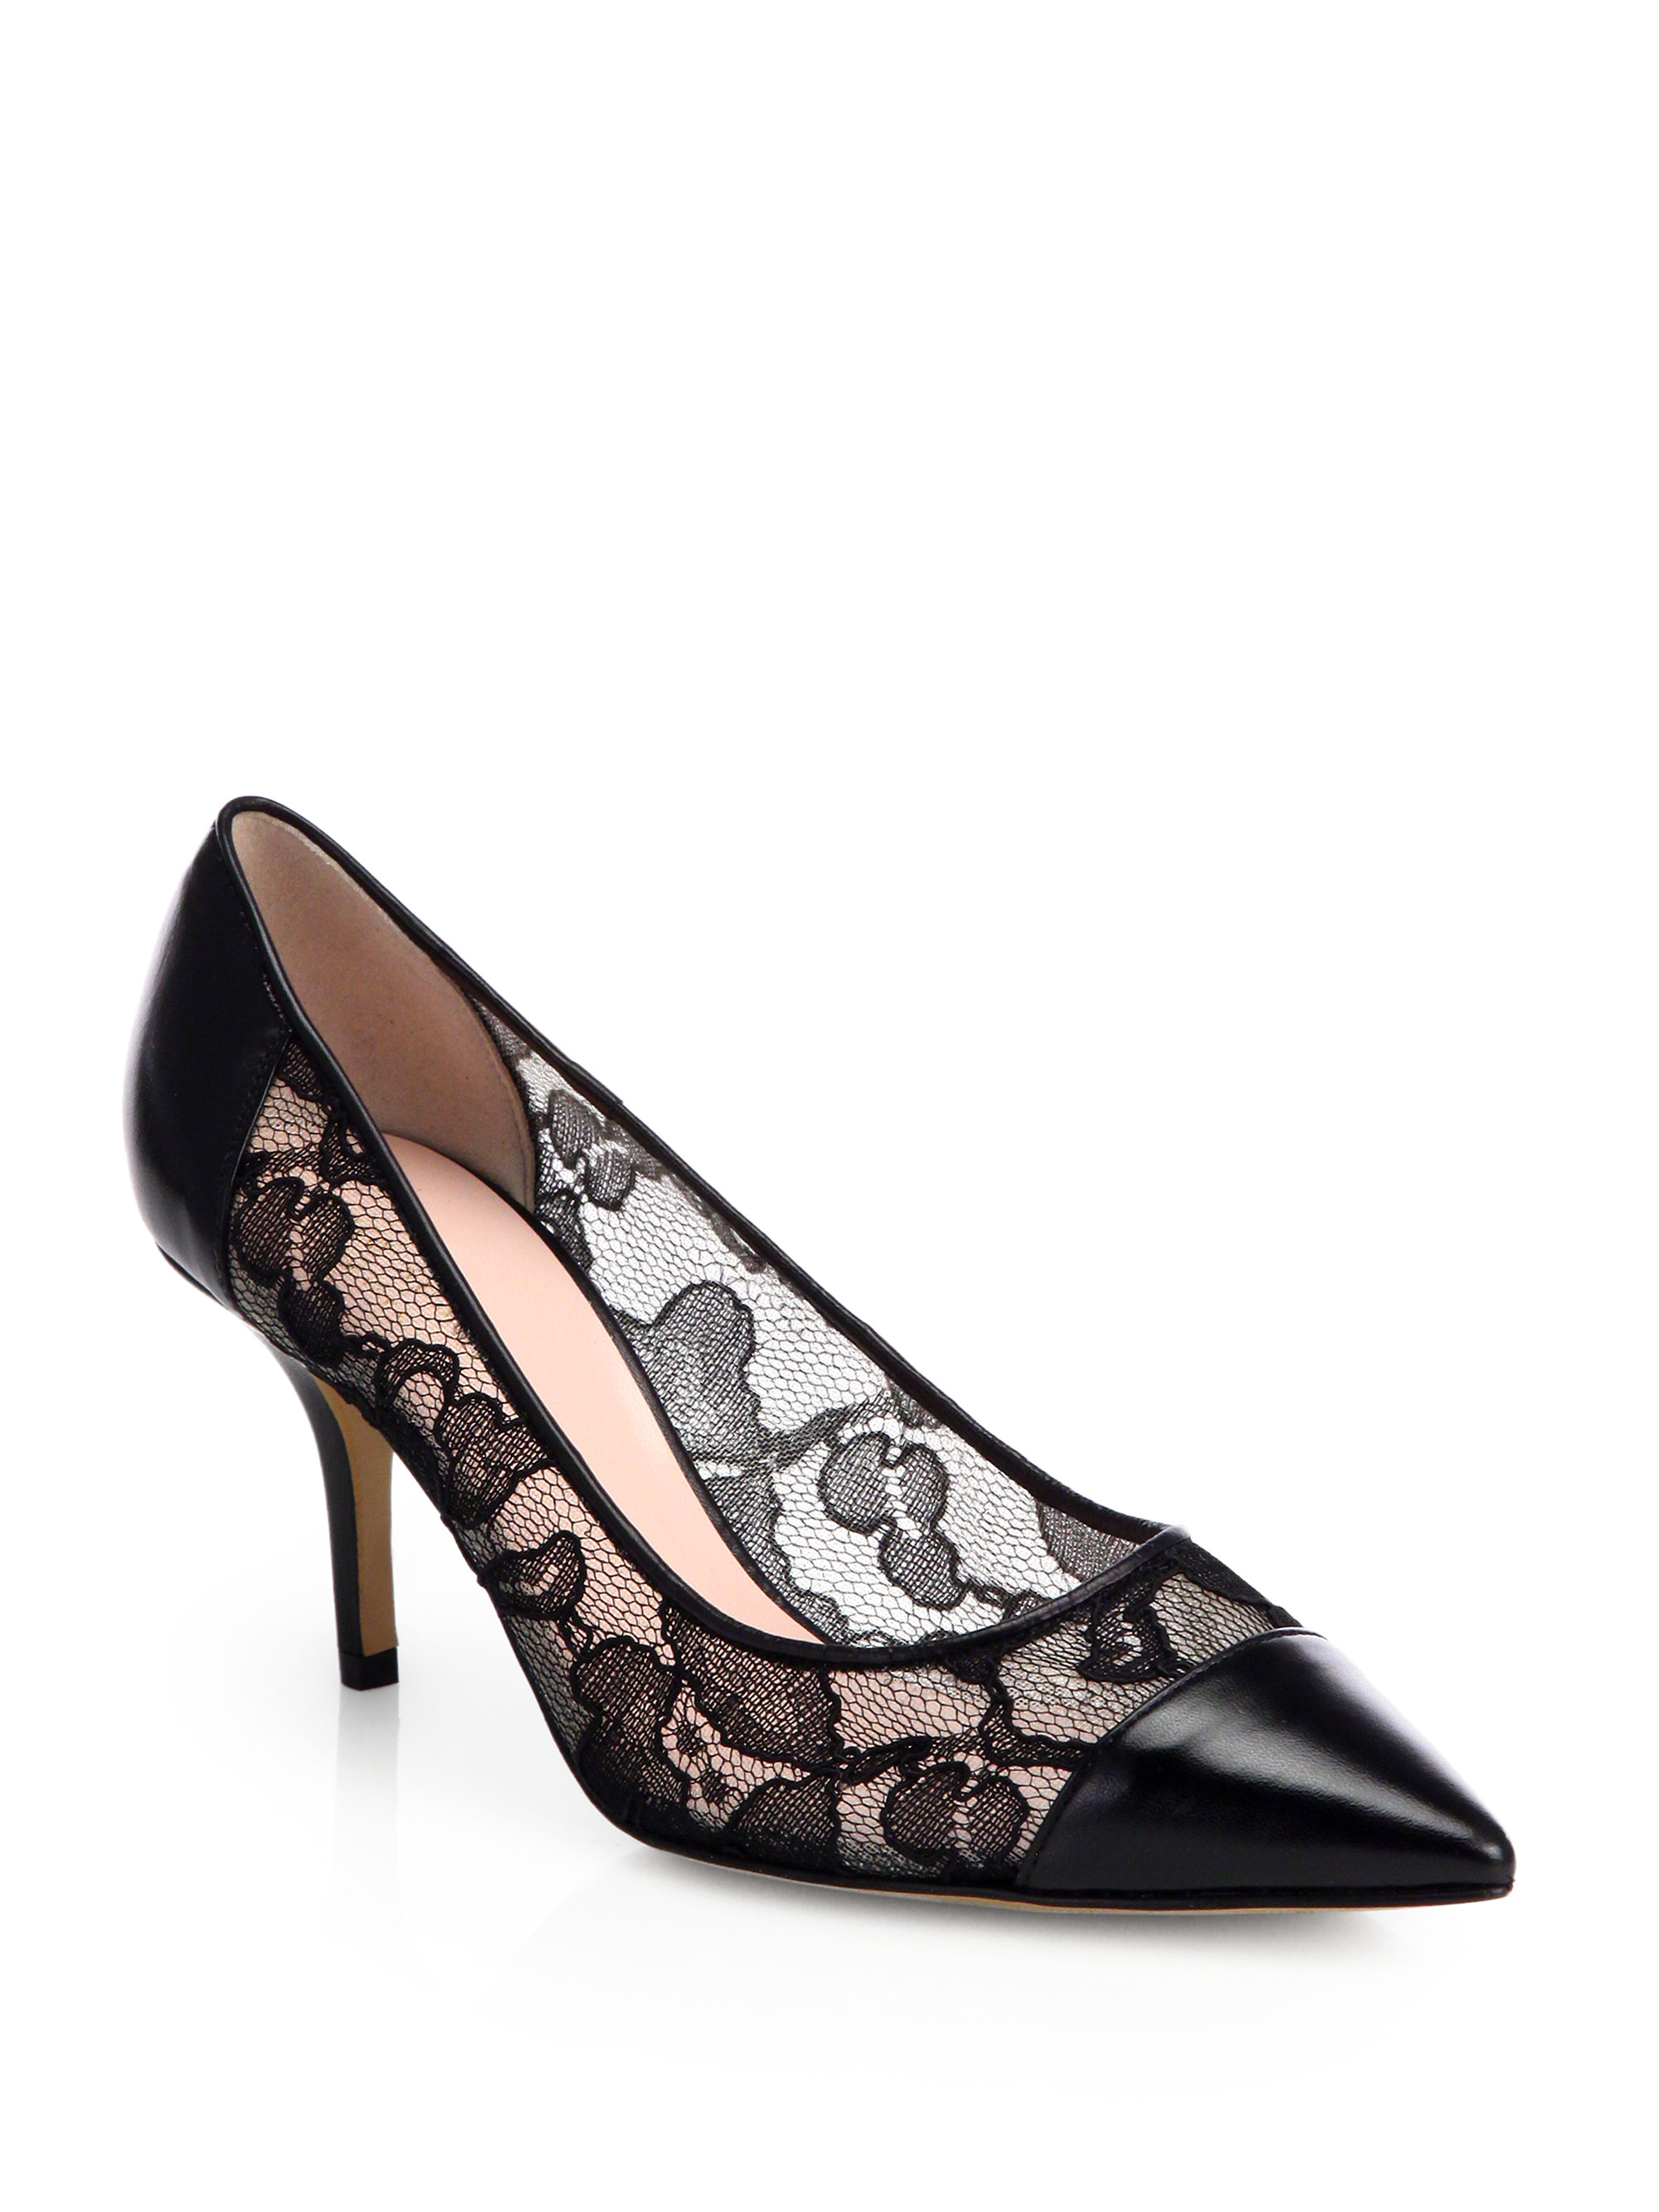 Lyst Kate Spade New York Jeb Lace Amp Leather Pumps In Black